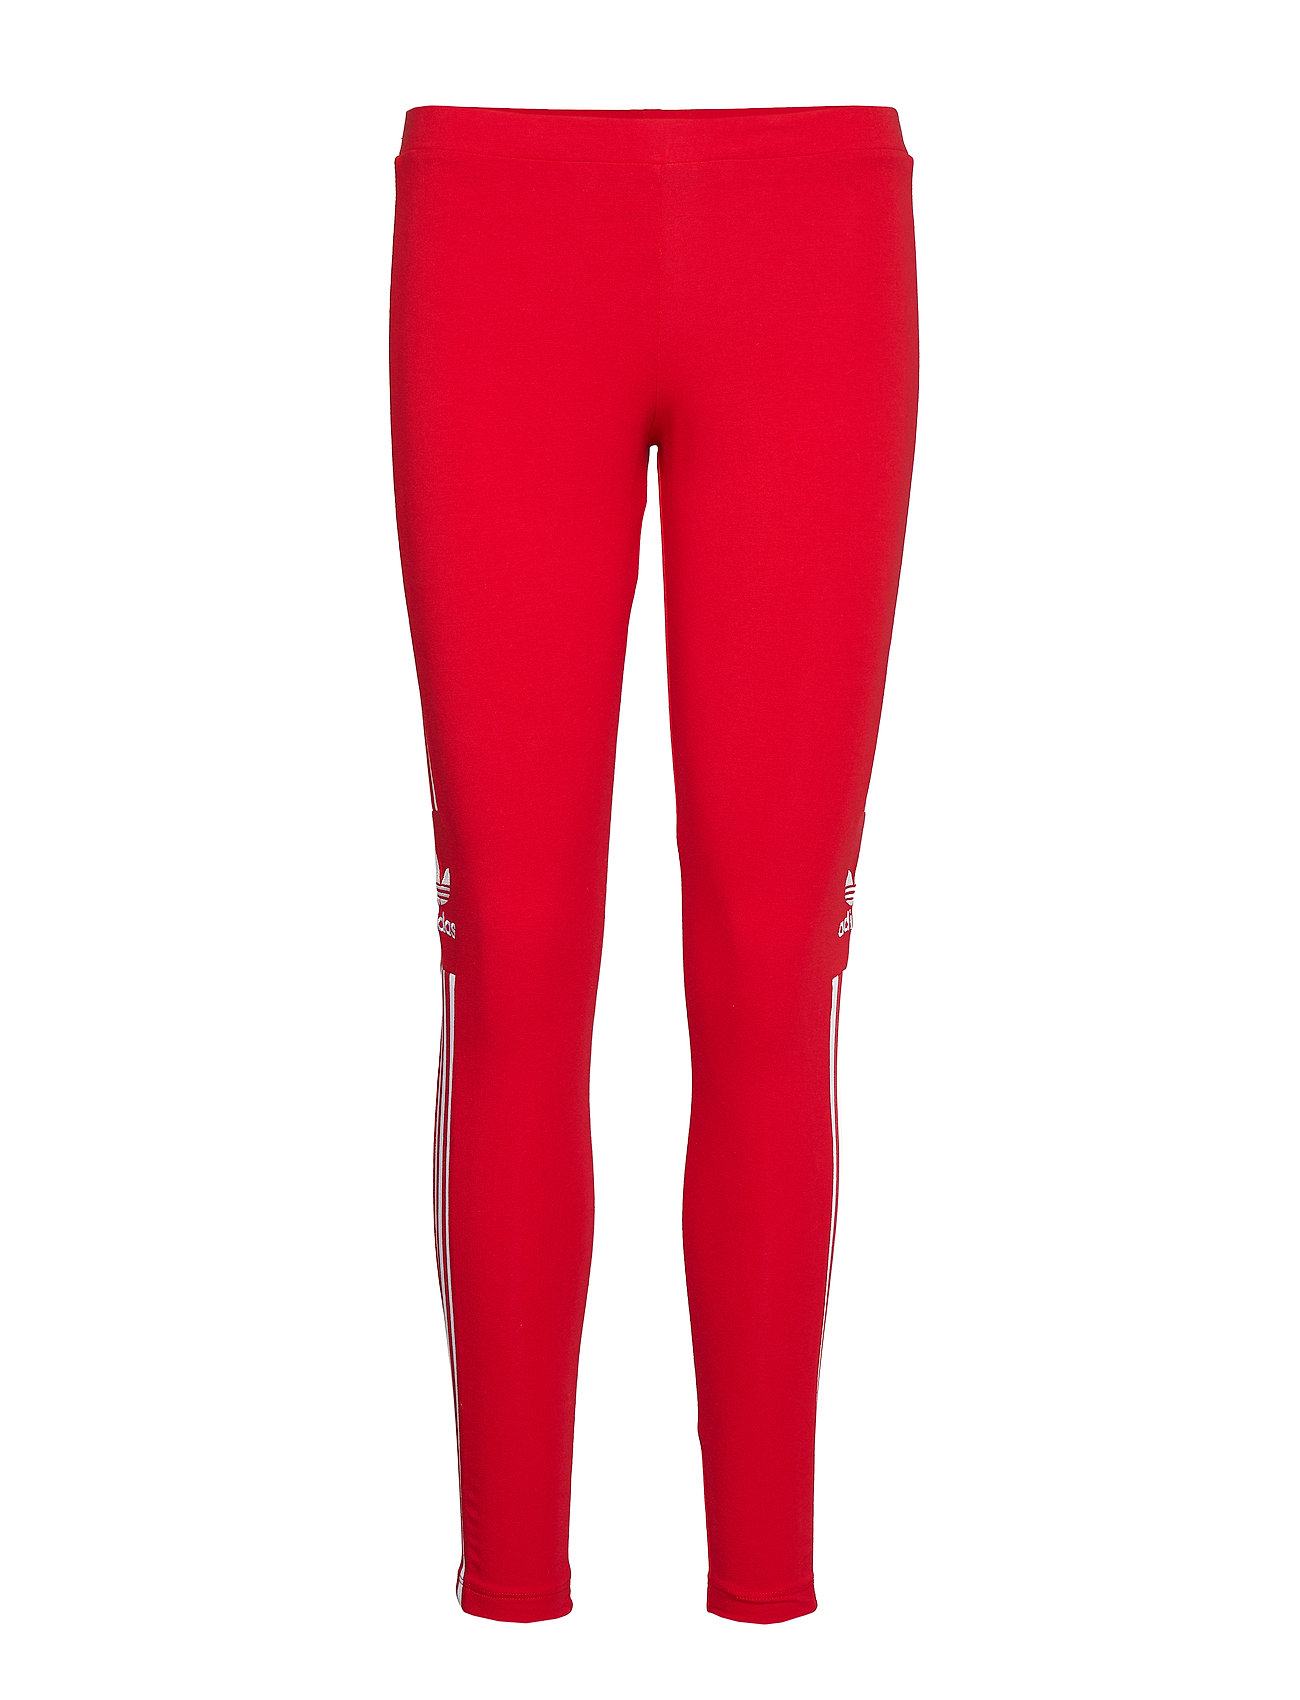 adidas Originals TREFOIL TIGHT - SCARLE